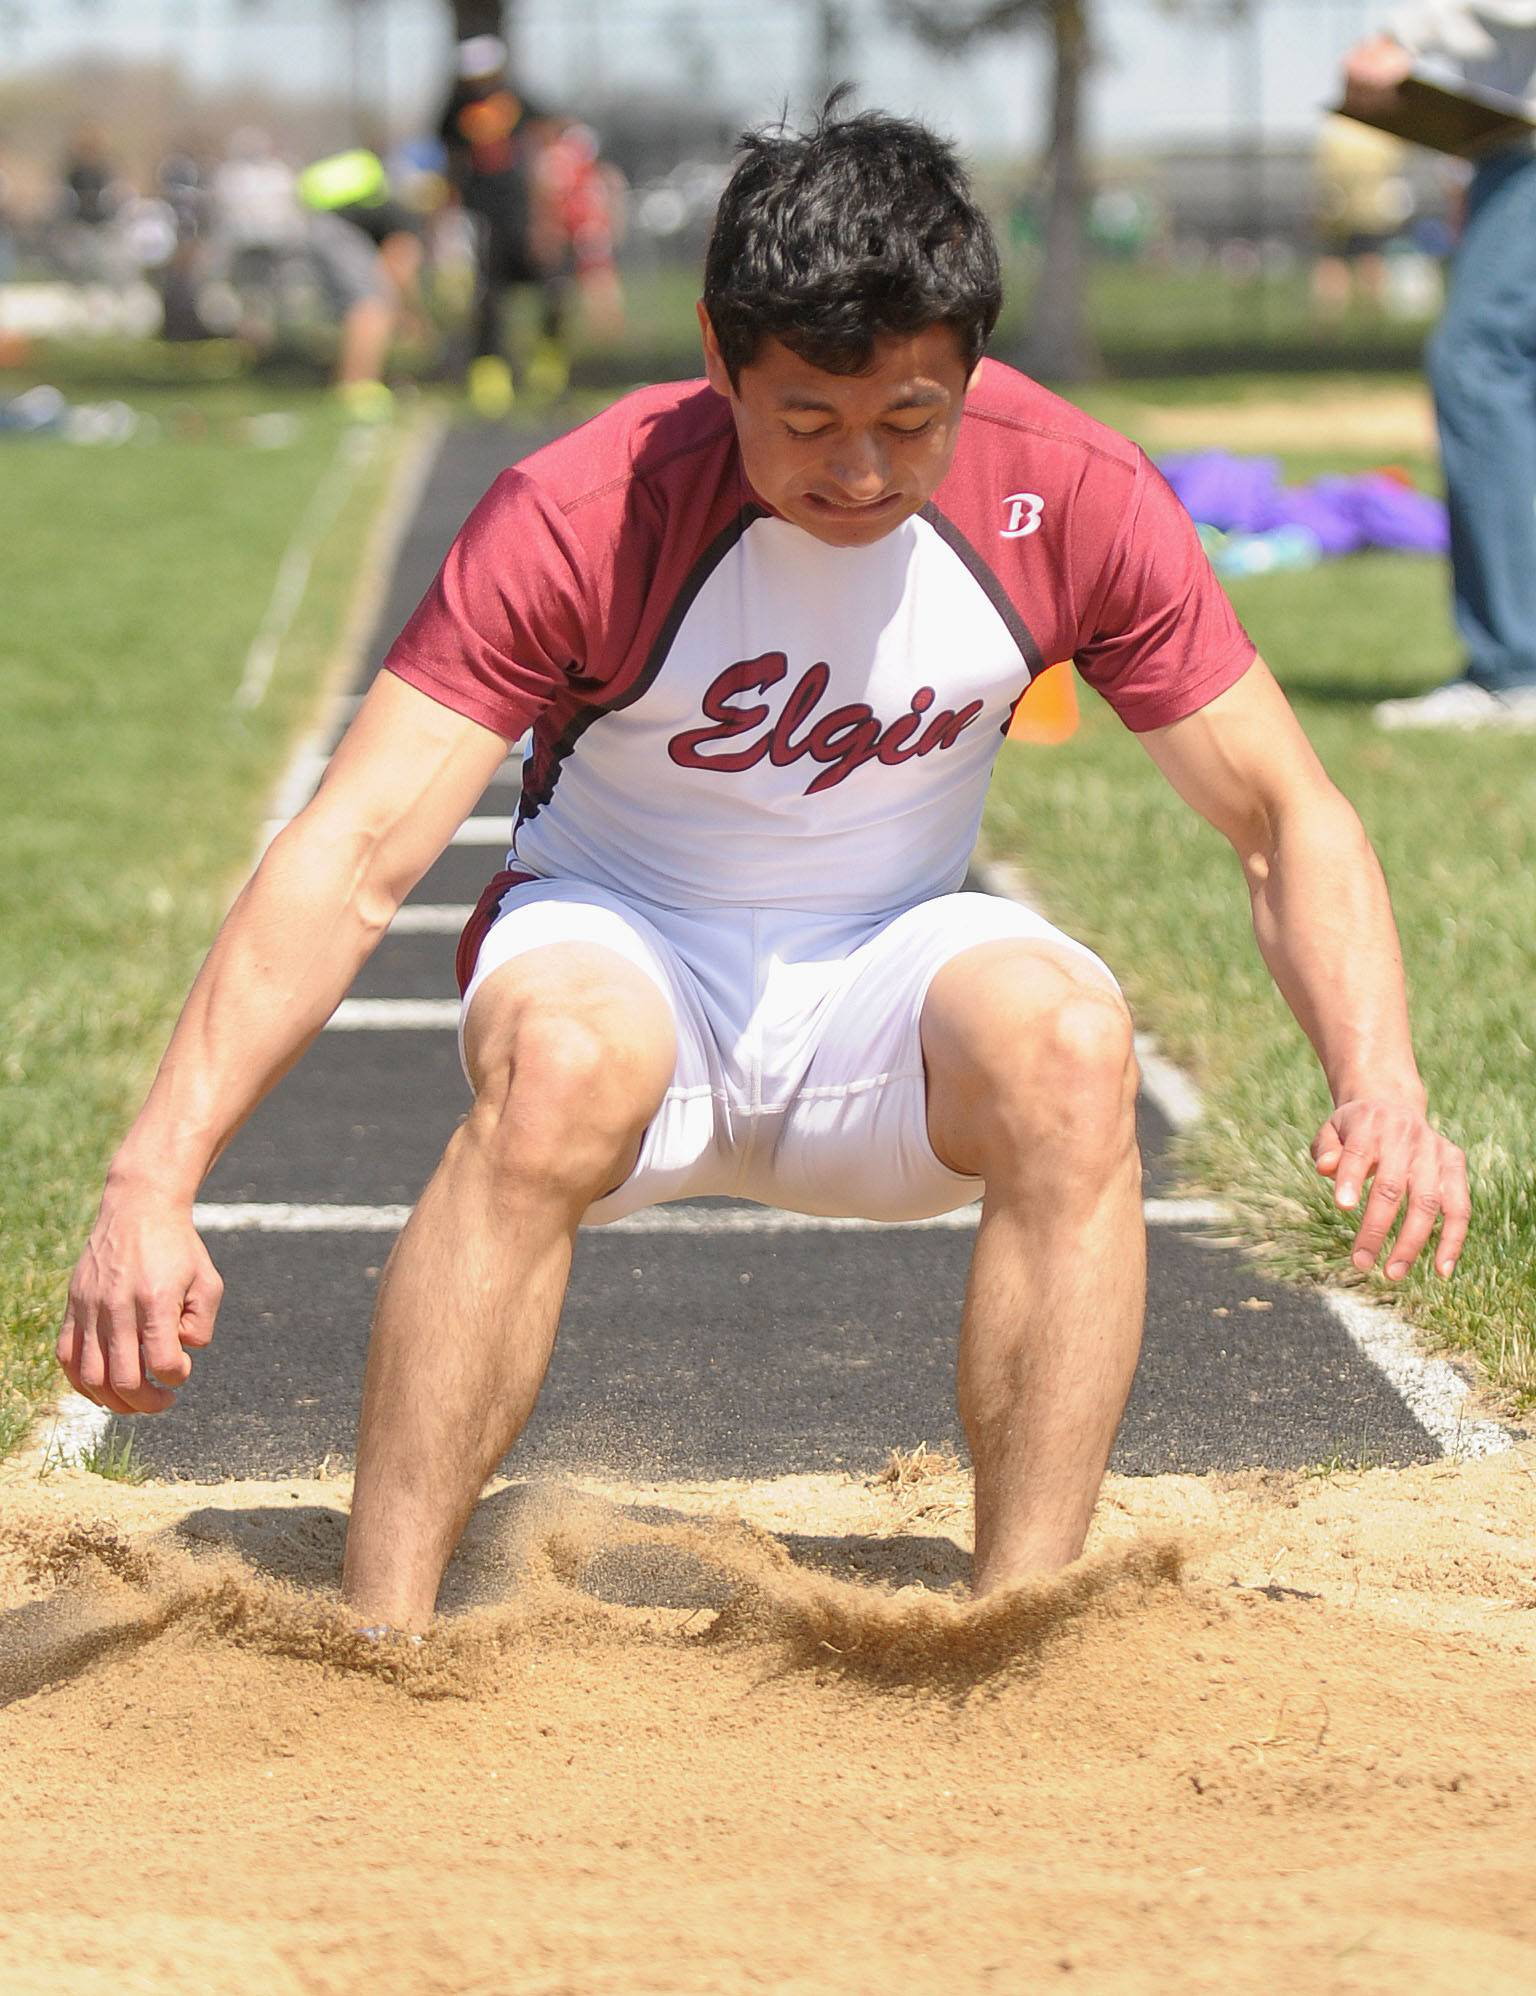 Elgin's Jhon Payne (cq) in the finals of the triple jump at Kaneland's Peterson Prep Invitational on Saturday, April 26.